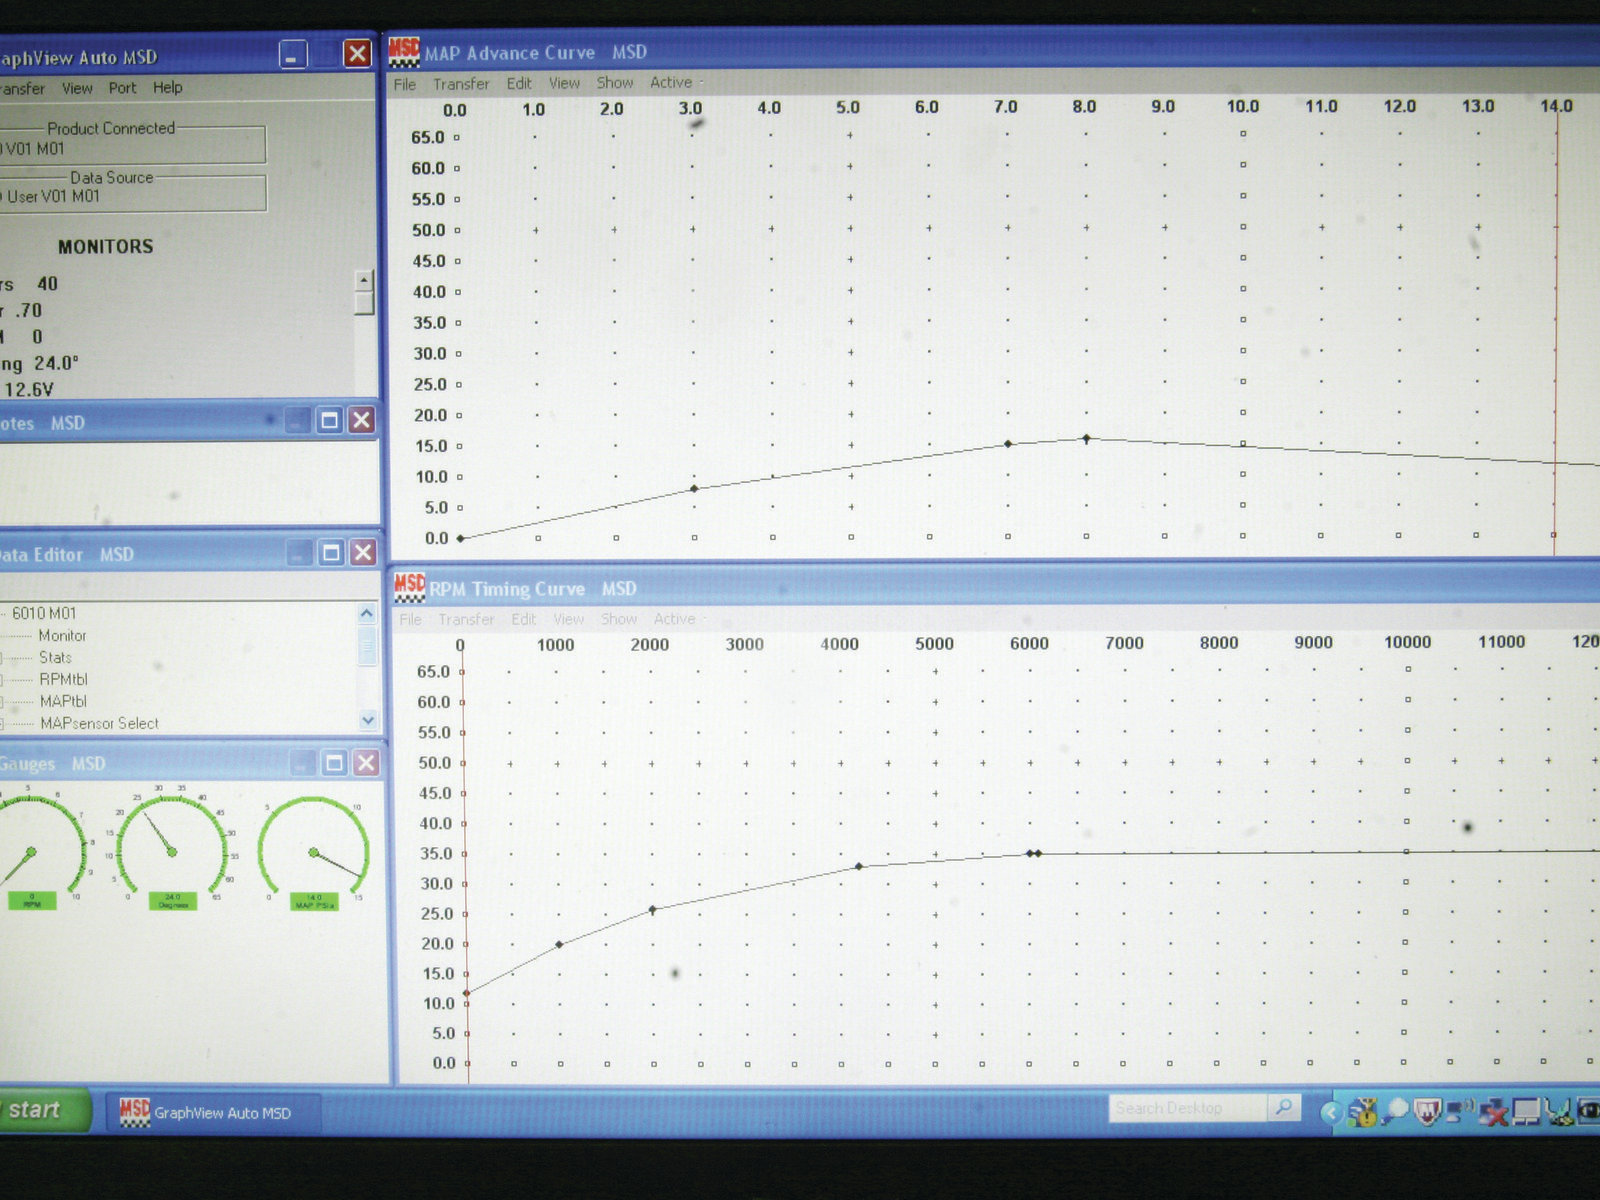 Budget Chevelle Ls Engine Swap Hot Rod Network Msd Wiring Diagram Pn 6010 This Is A Screen Shot Of The Pro Data Software That Runs 6ls Box Top Curve Vacuum Advance Using Map Sensor While Bottom